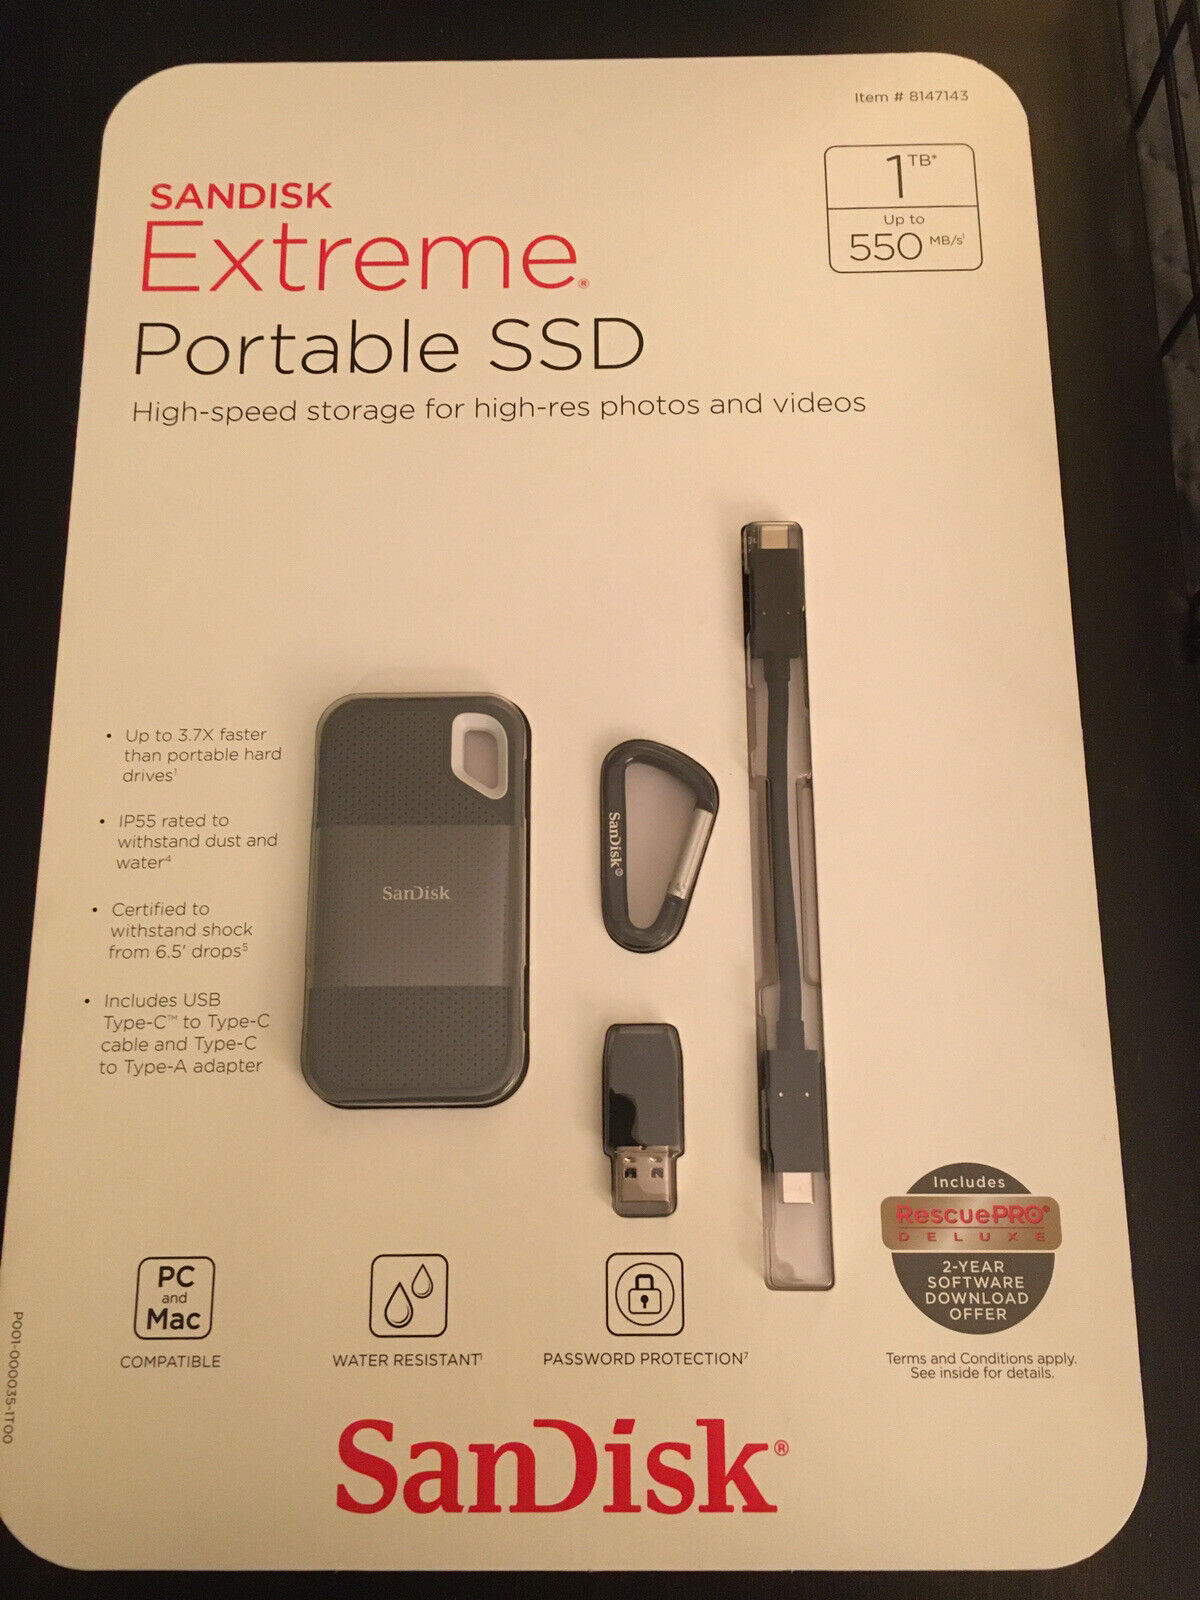 Brand New SanDisk Extreme SSD 1TB Portable External Solid State Drive . Buy it now for 105.00